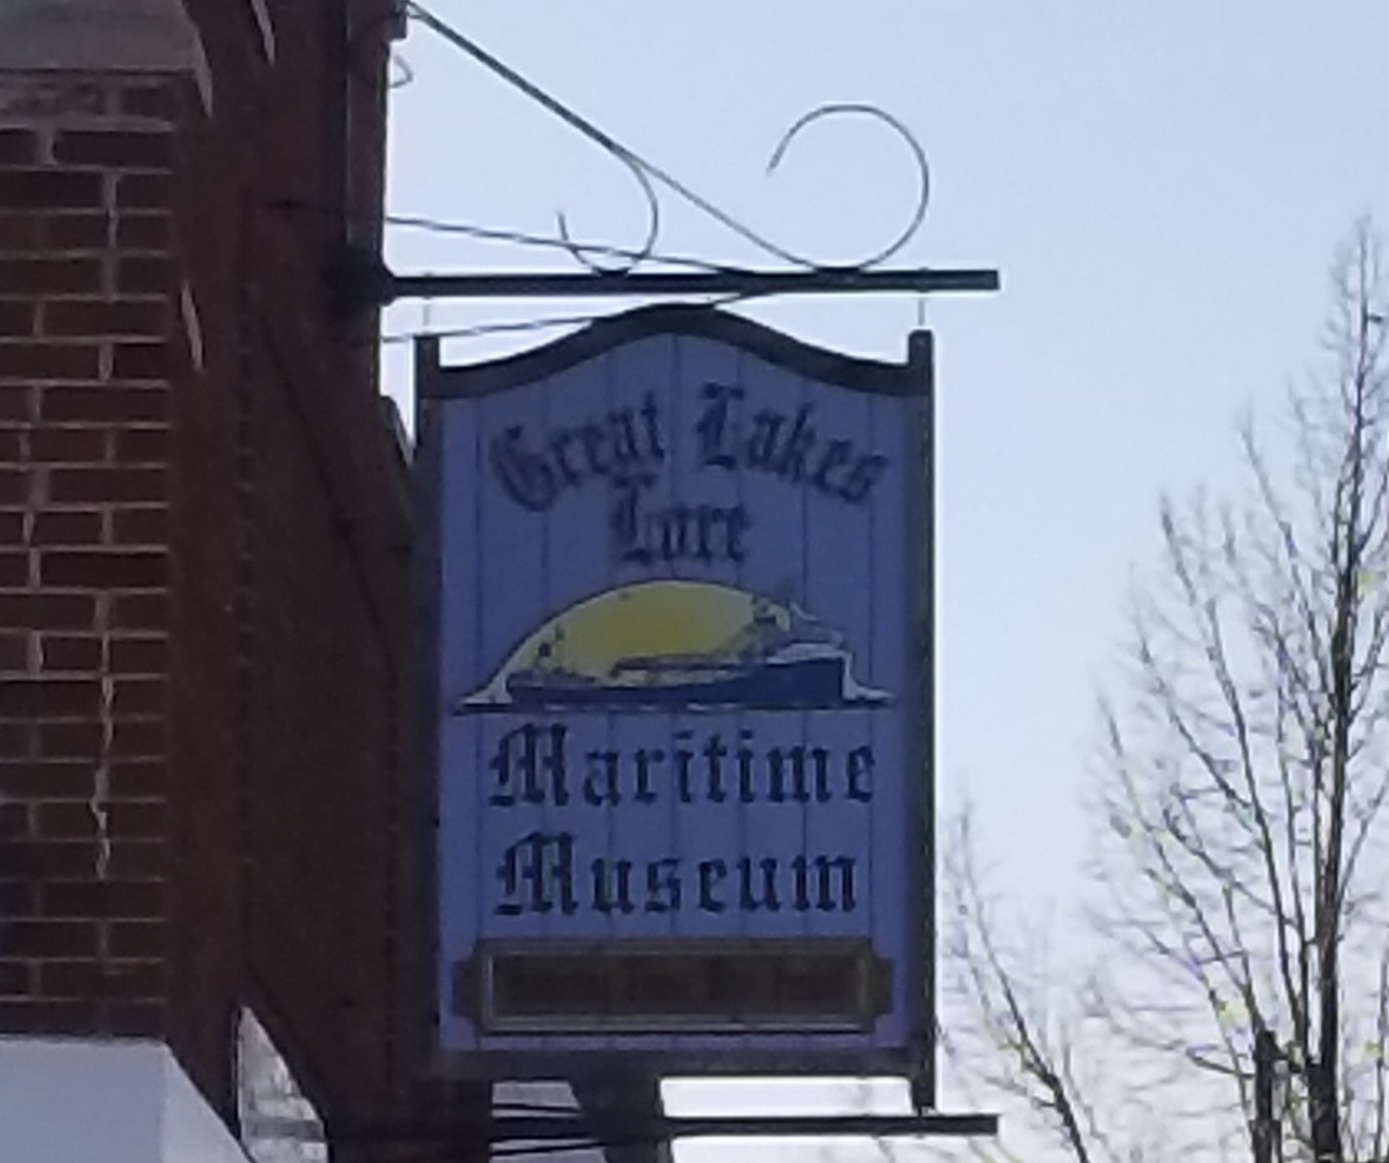 Great Lakes Lore Maritime Museum - 367 North Third StreetRogers City, MI 49779(989) 734-0706